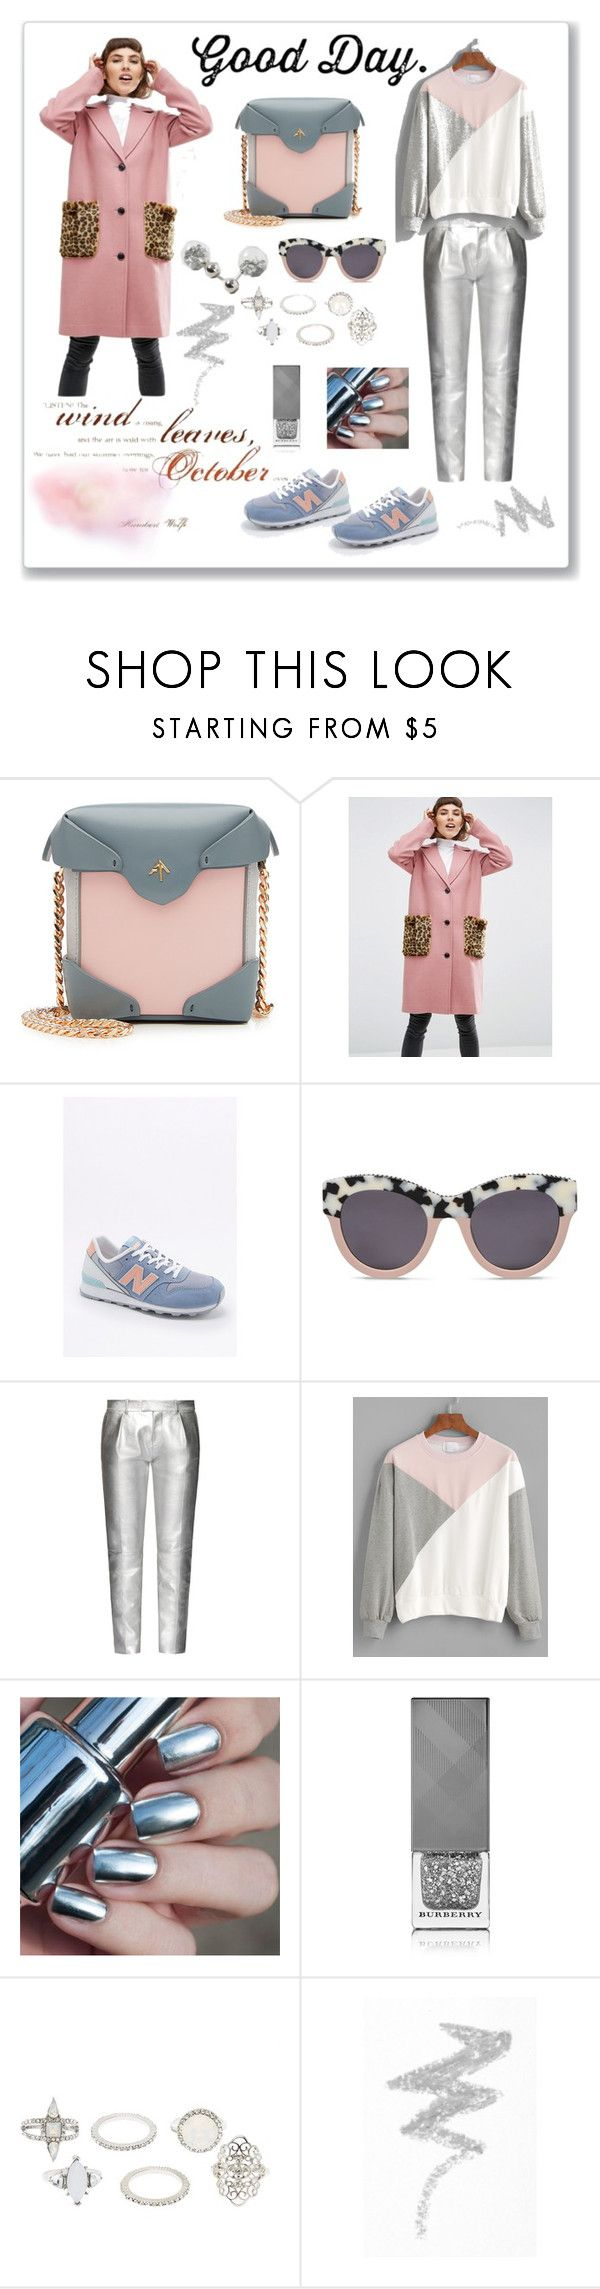 """Silver&rose"" by dilka-ylibka on Polyvore featuring мода, MANU Atelier, ASOS, New Balance, STELLA McCARTNEY, Tod's, Burberry, Charlotte Russe, NYX и Dorothy Perkins"